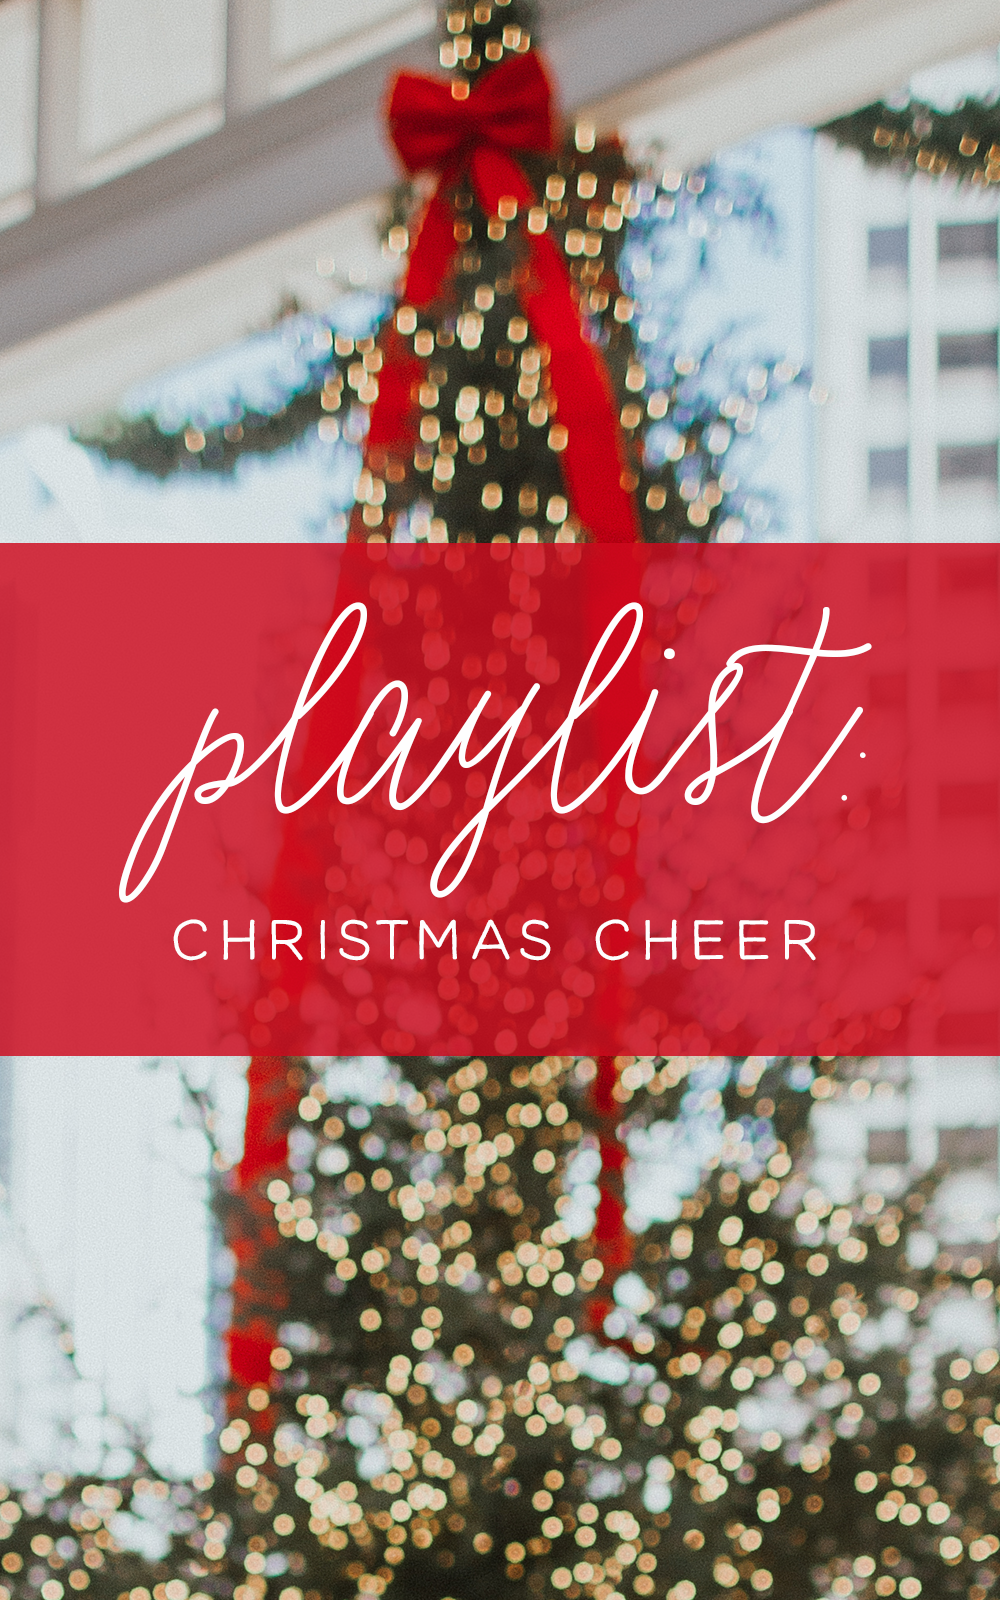 ChristmasCheer_Playlist.png